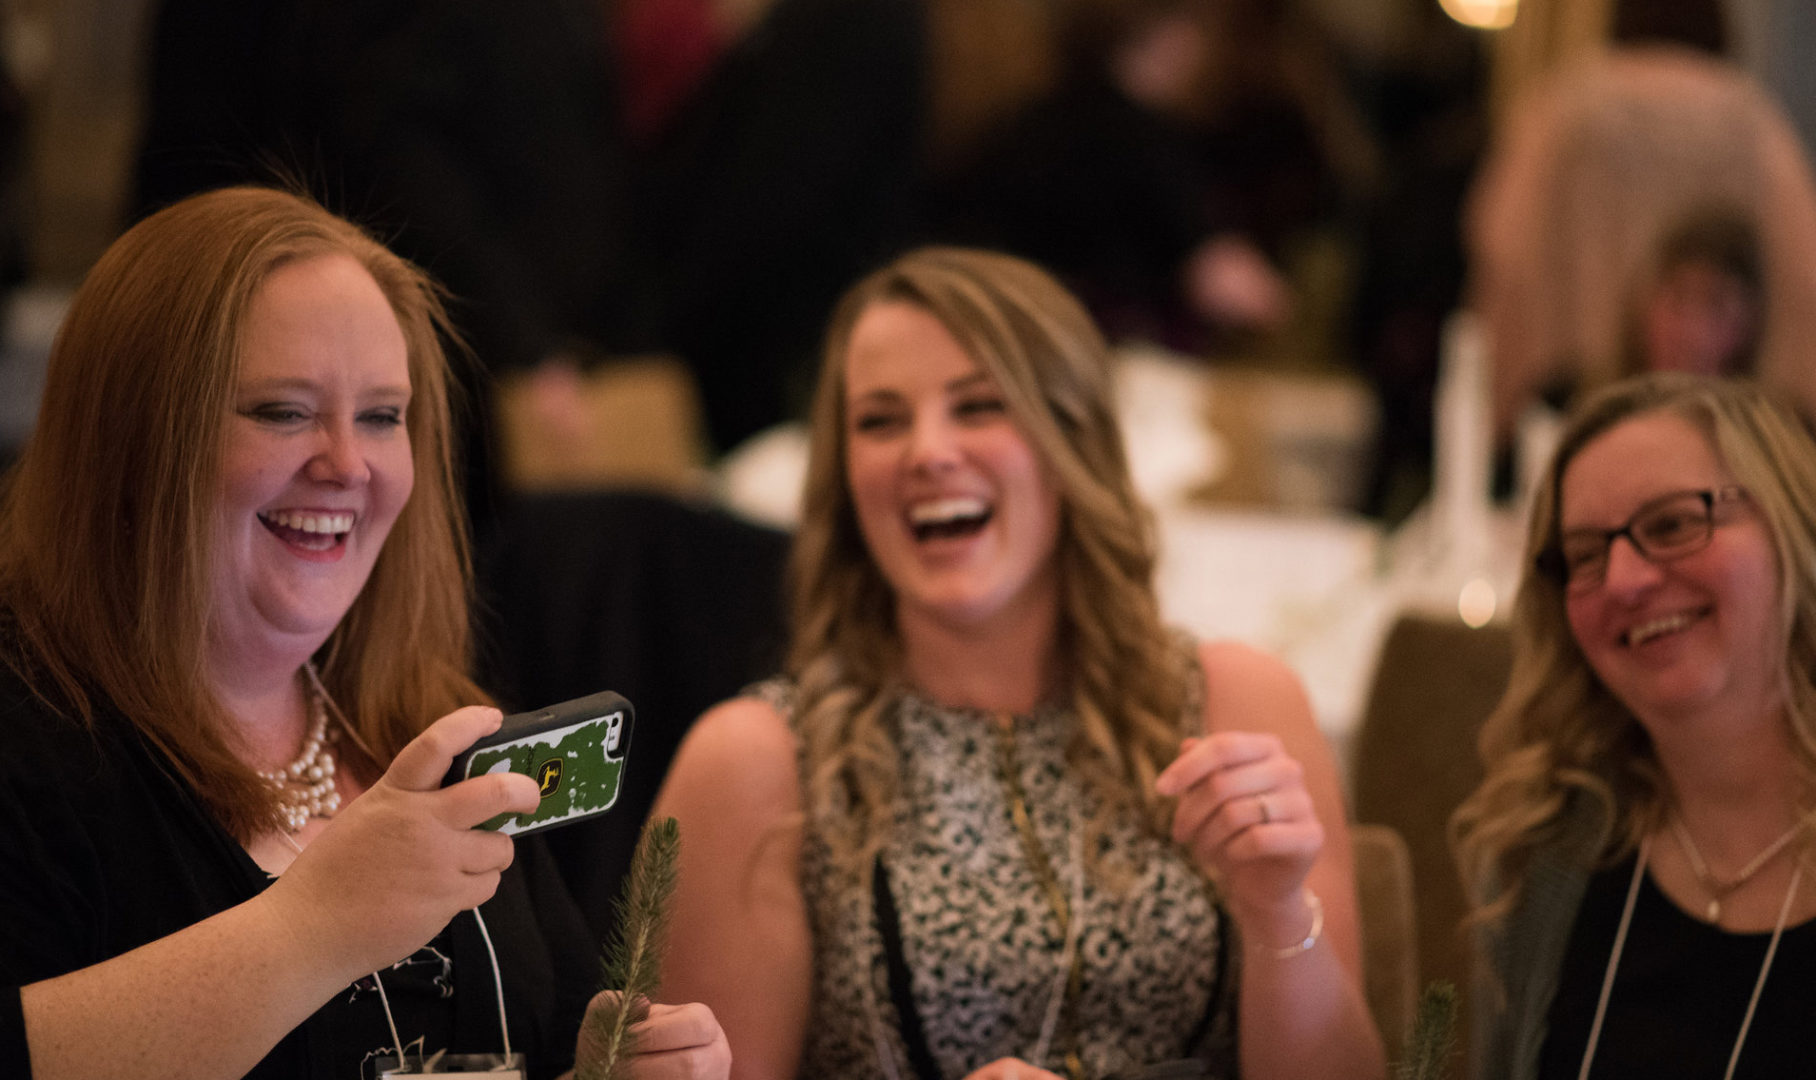 Three people sitting at banquet smiling and laughing looking at phone